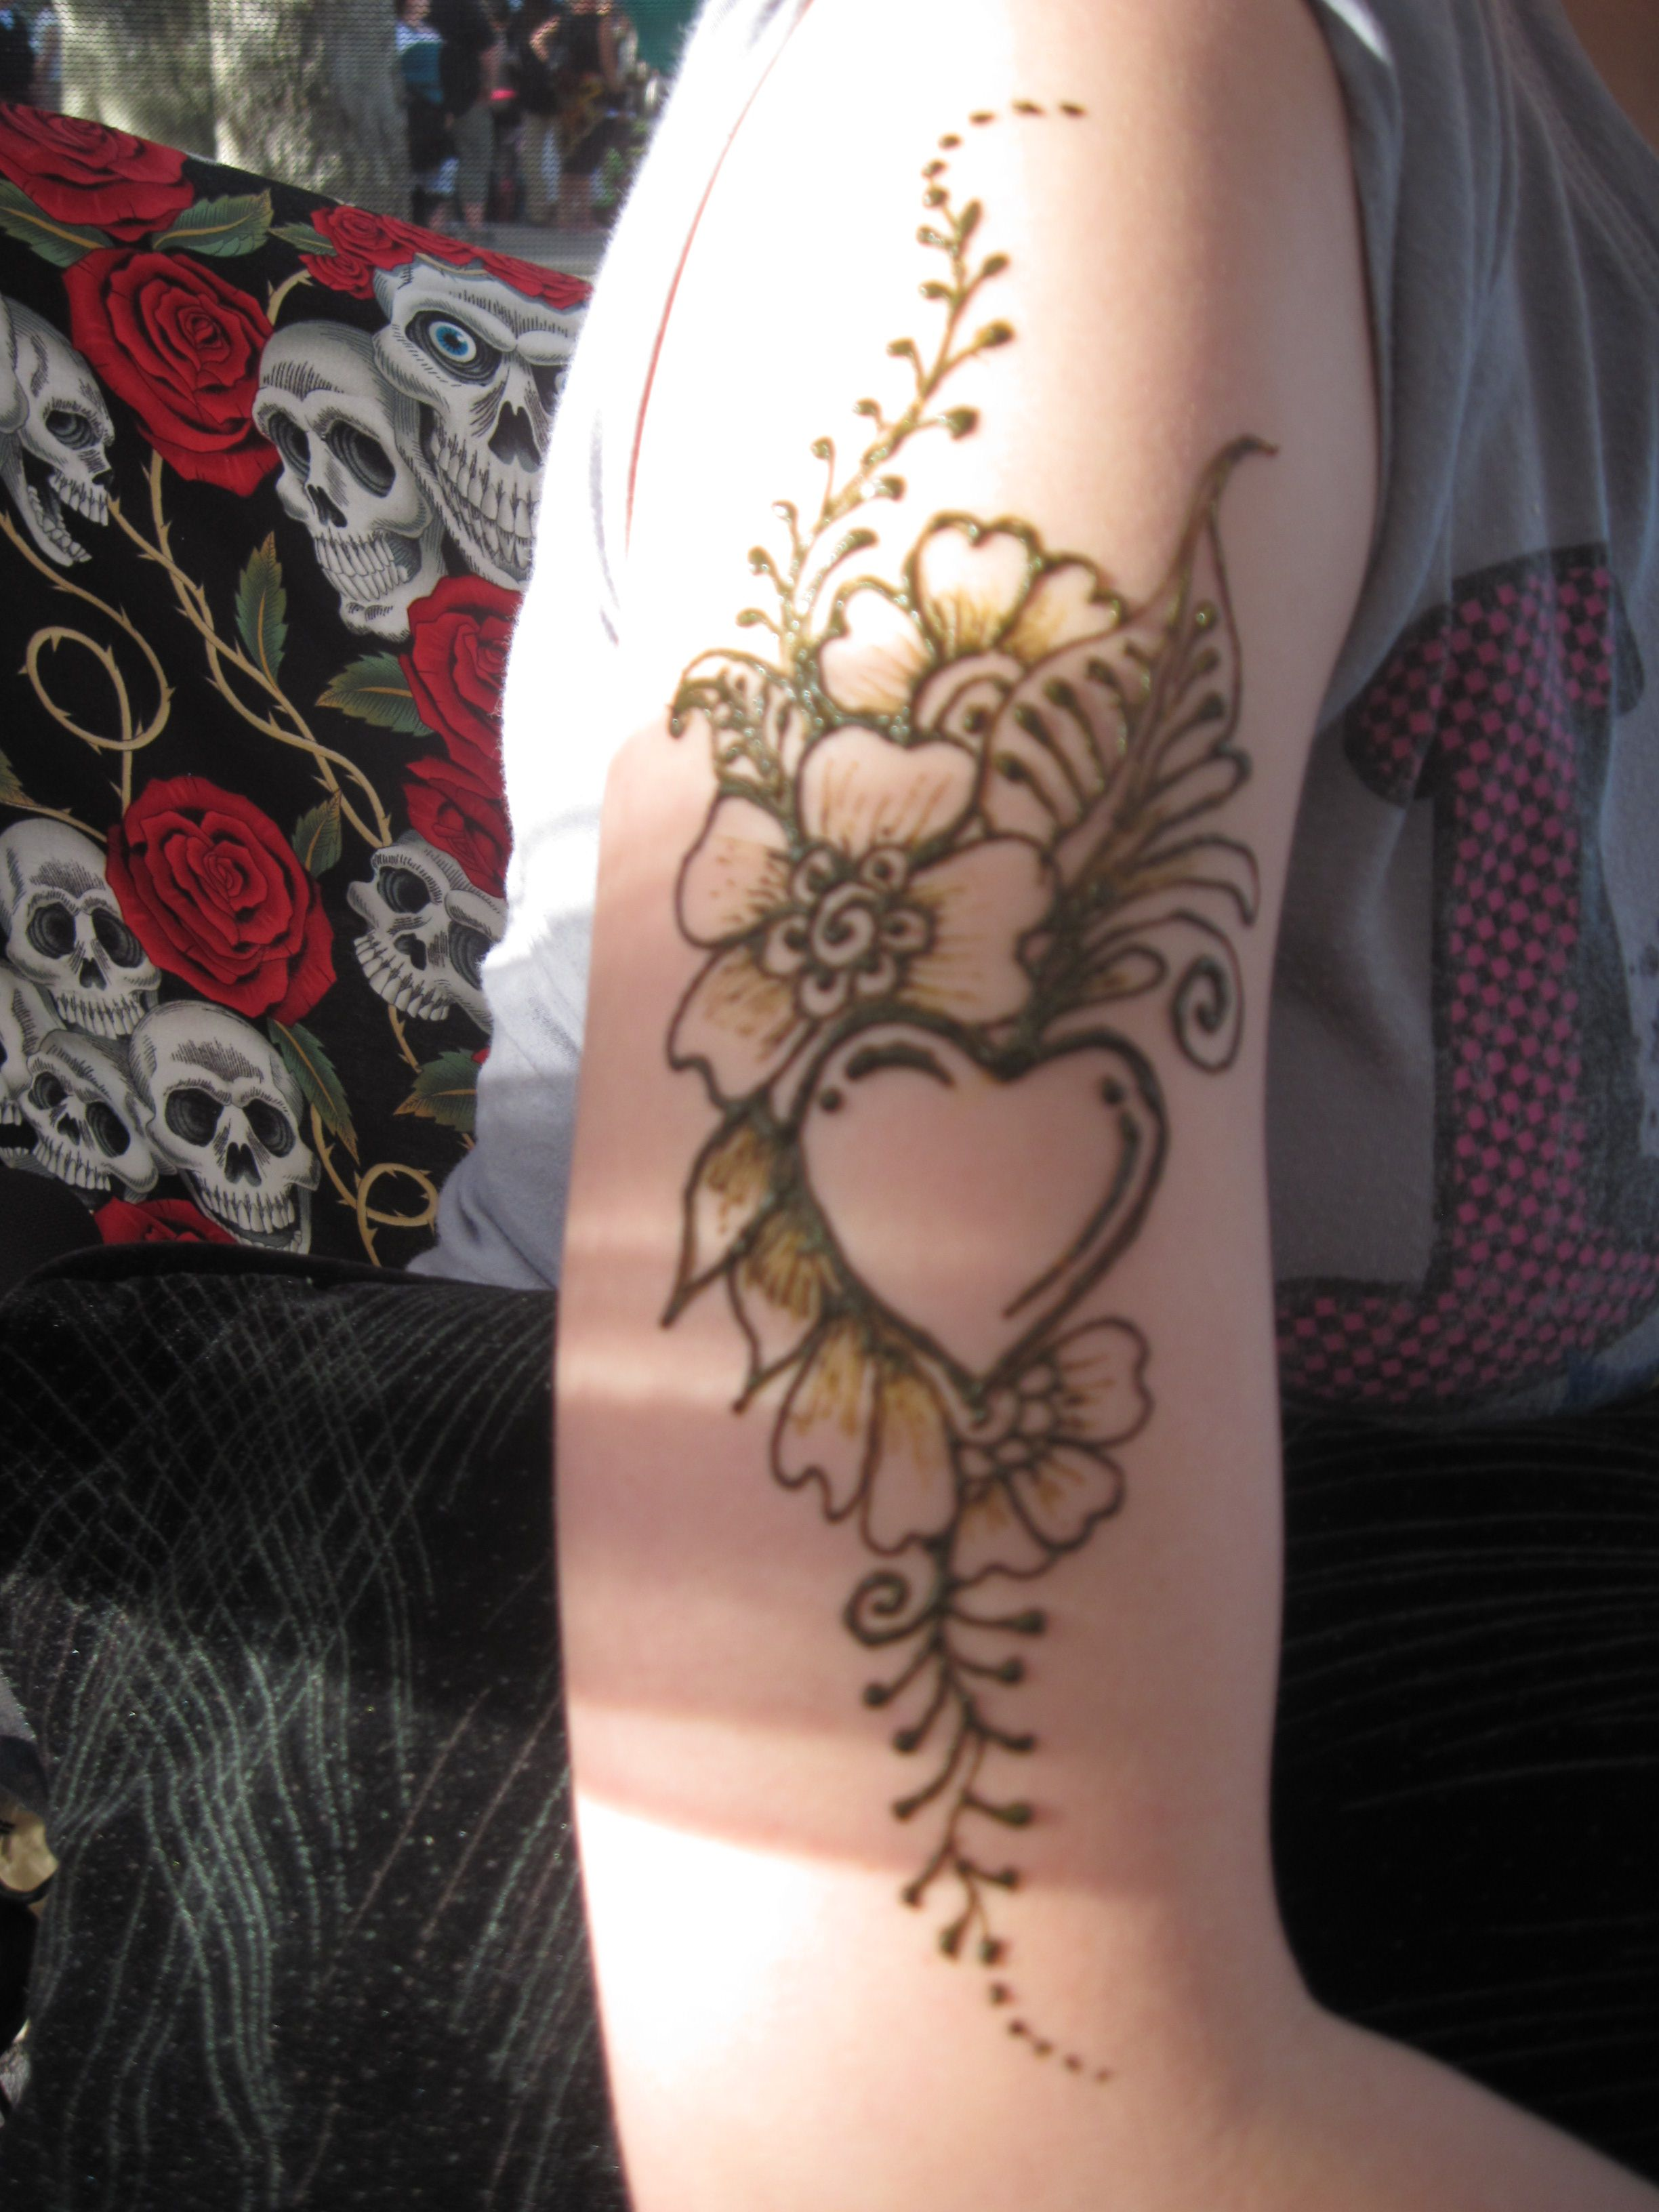 Professional Henna Tattoo Artists For Hire In Austin: Henna Designs Image By WickedApple Art On My Work